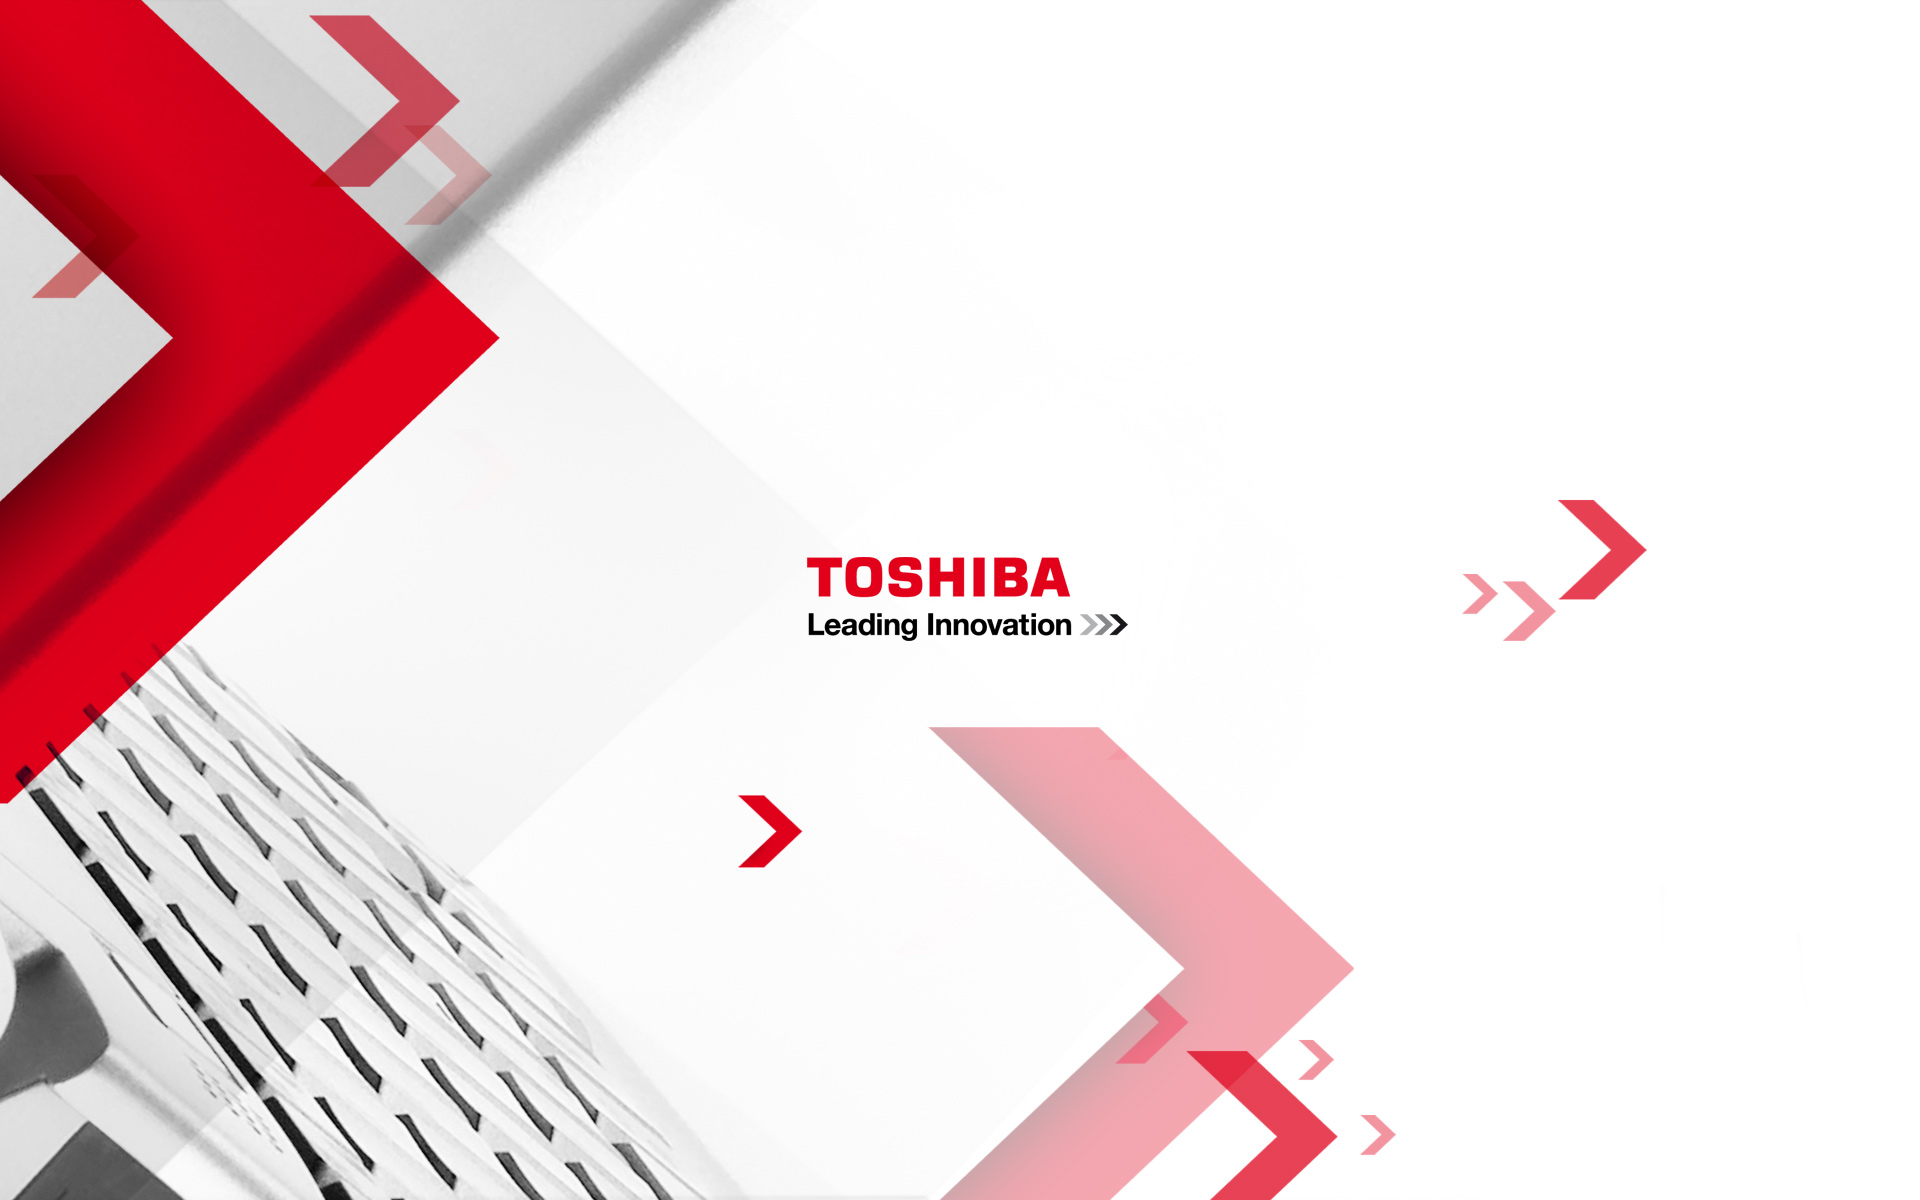 Toshiba Backgrounds Group (71+)